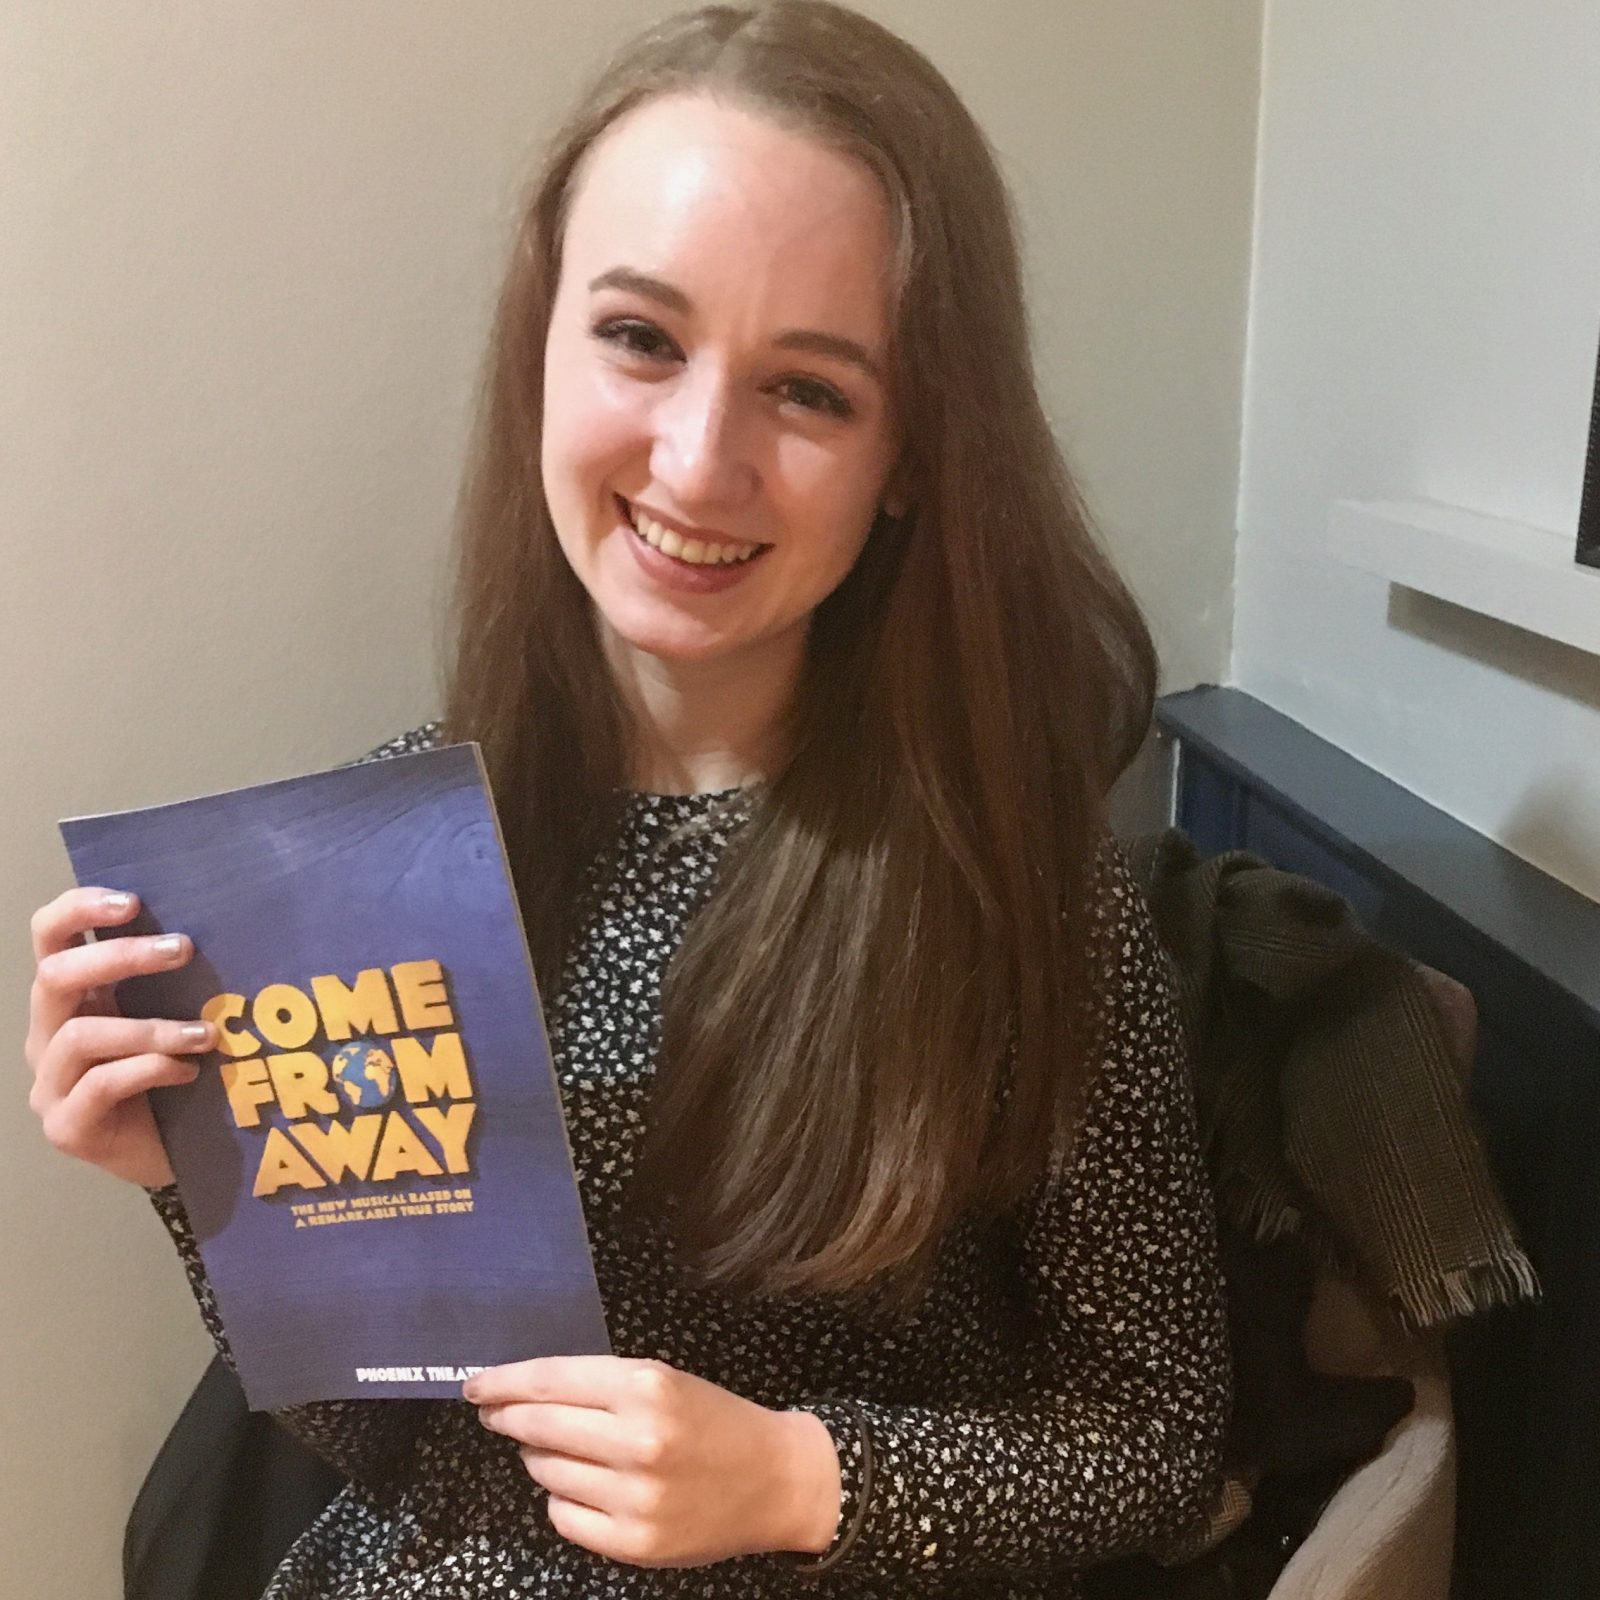 pippa sat on chair, holding up blue come from away programme and smiling